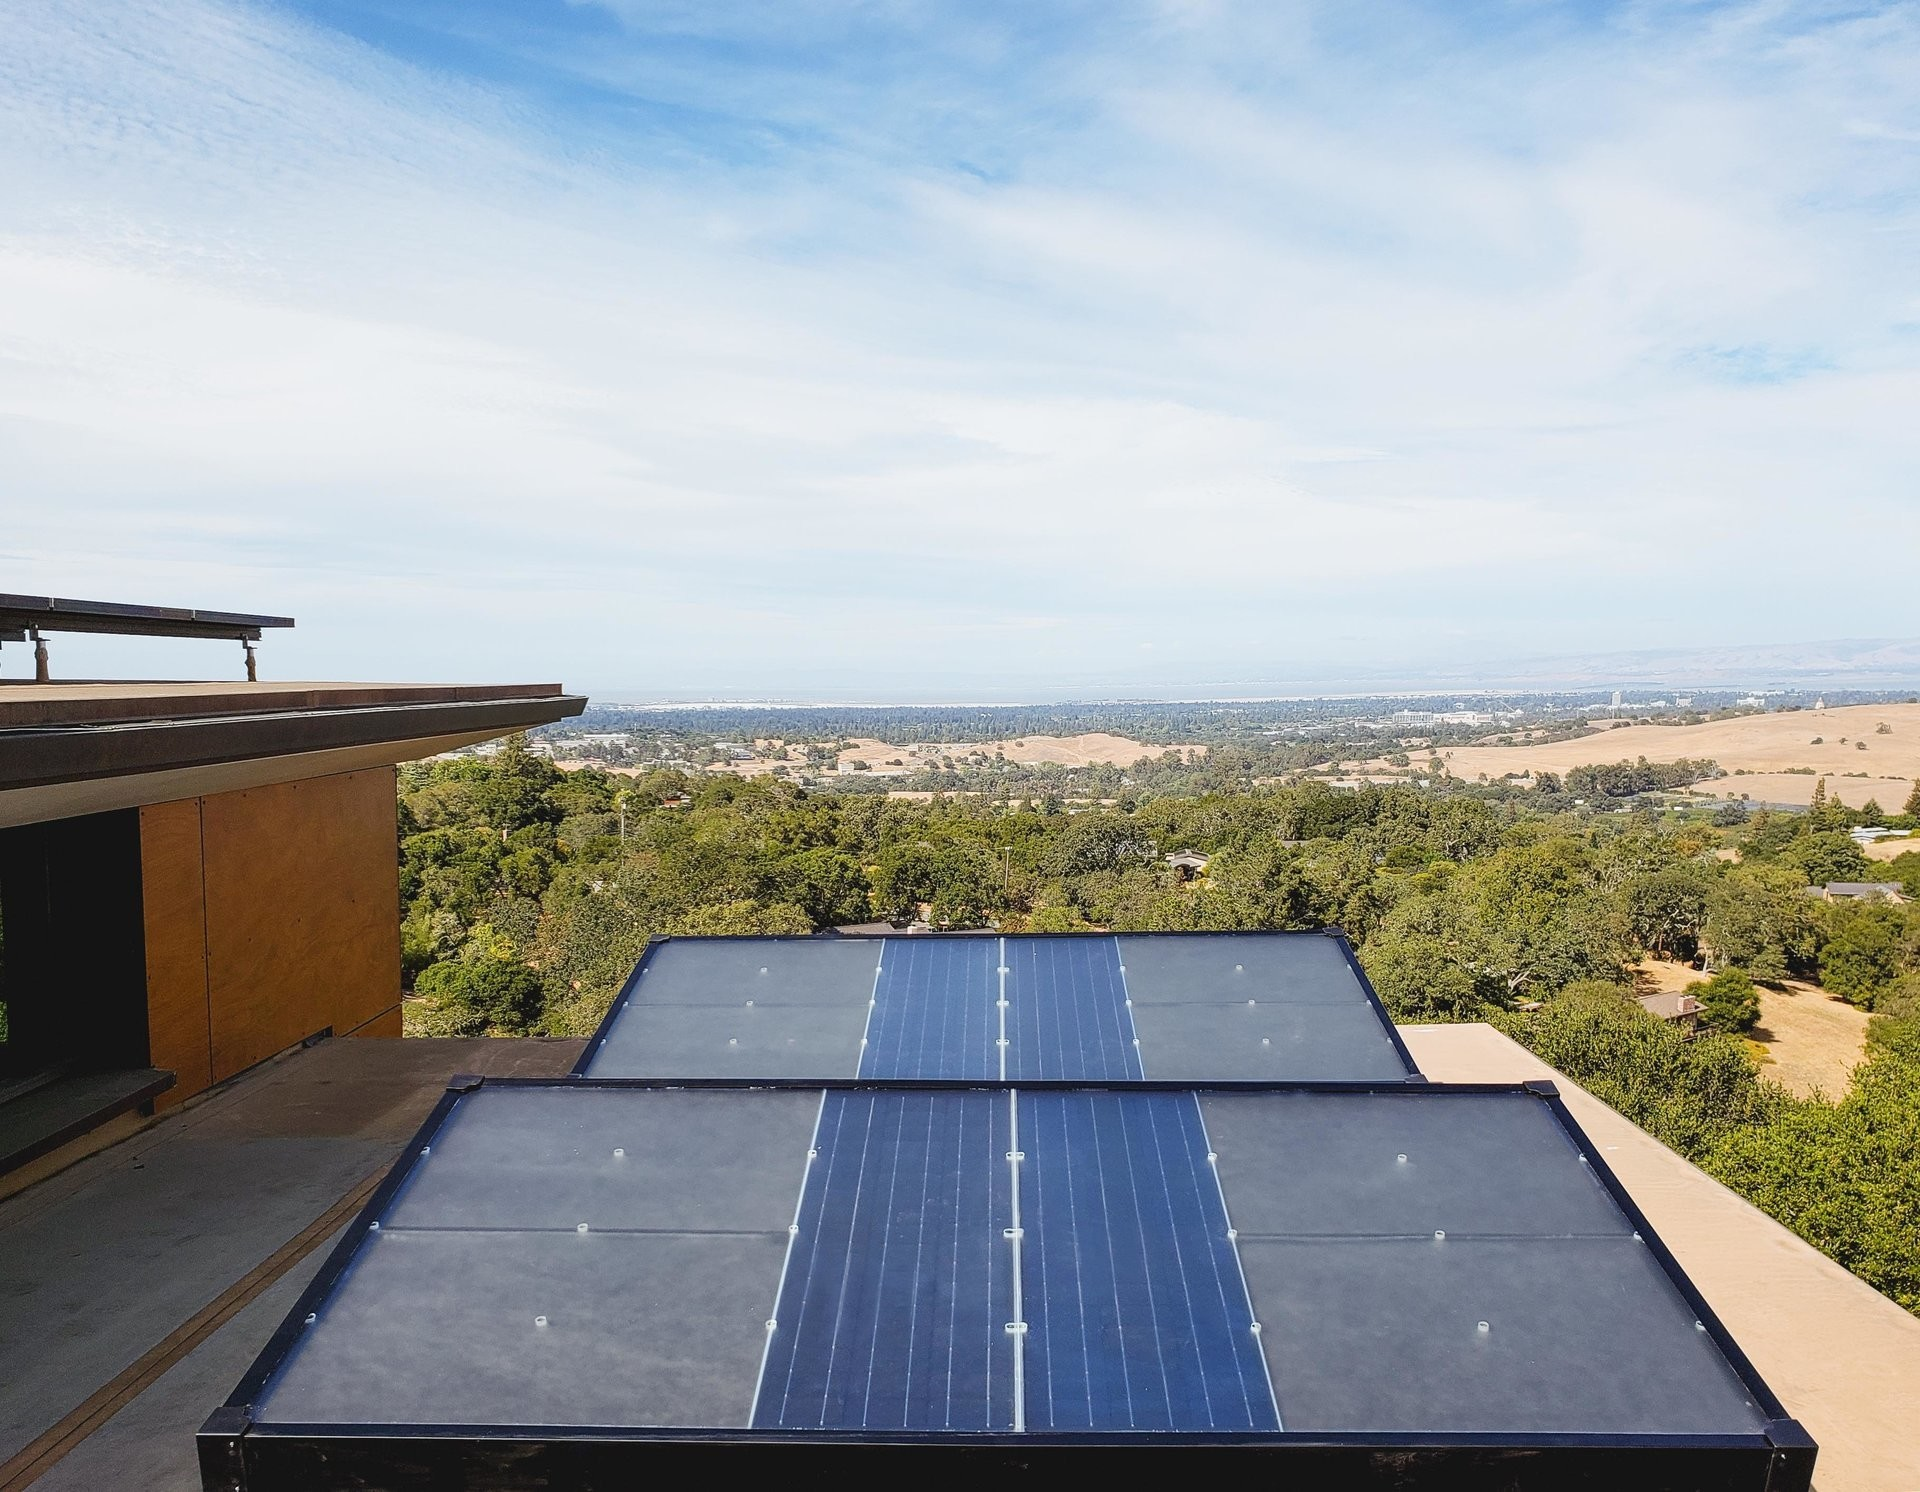 weforum.org - These solar panels pull clean drinking water from the air